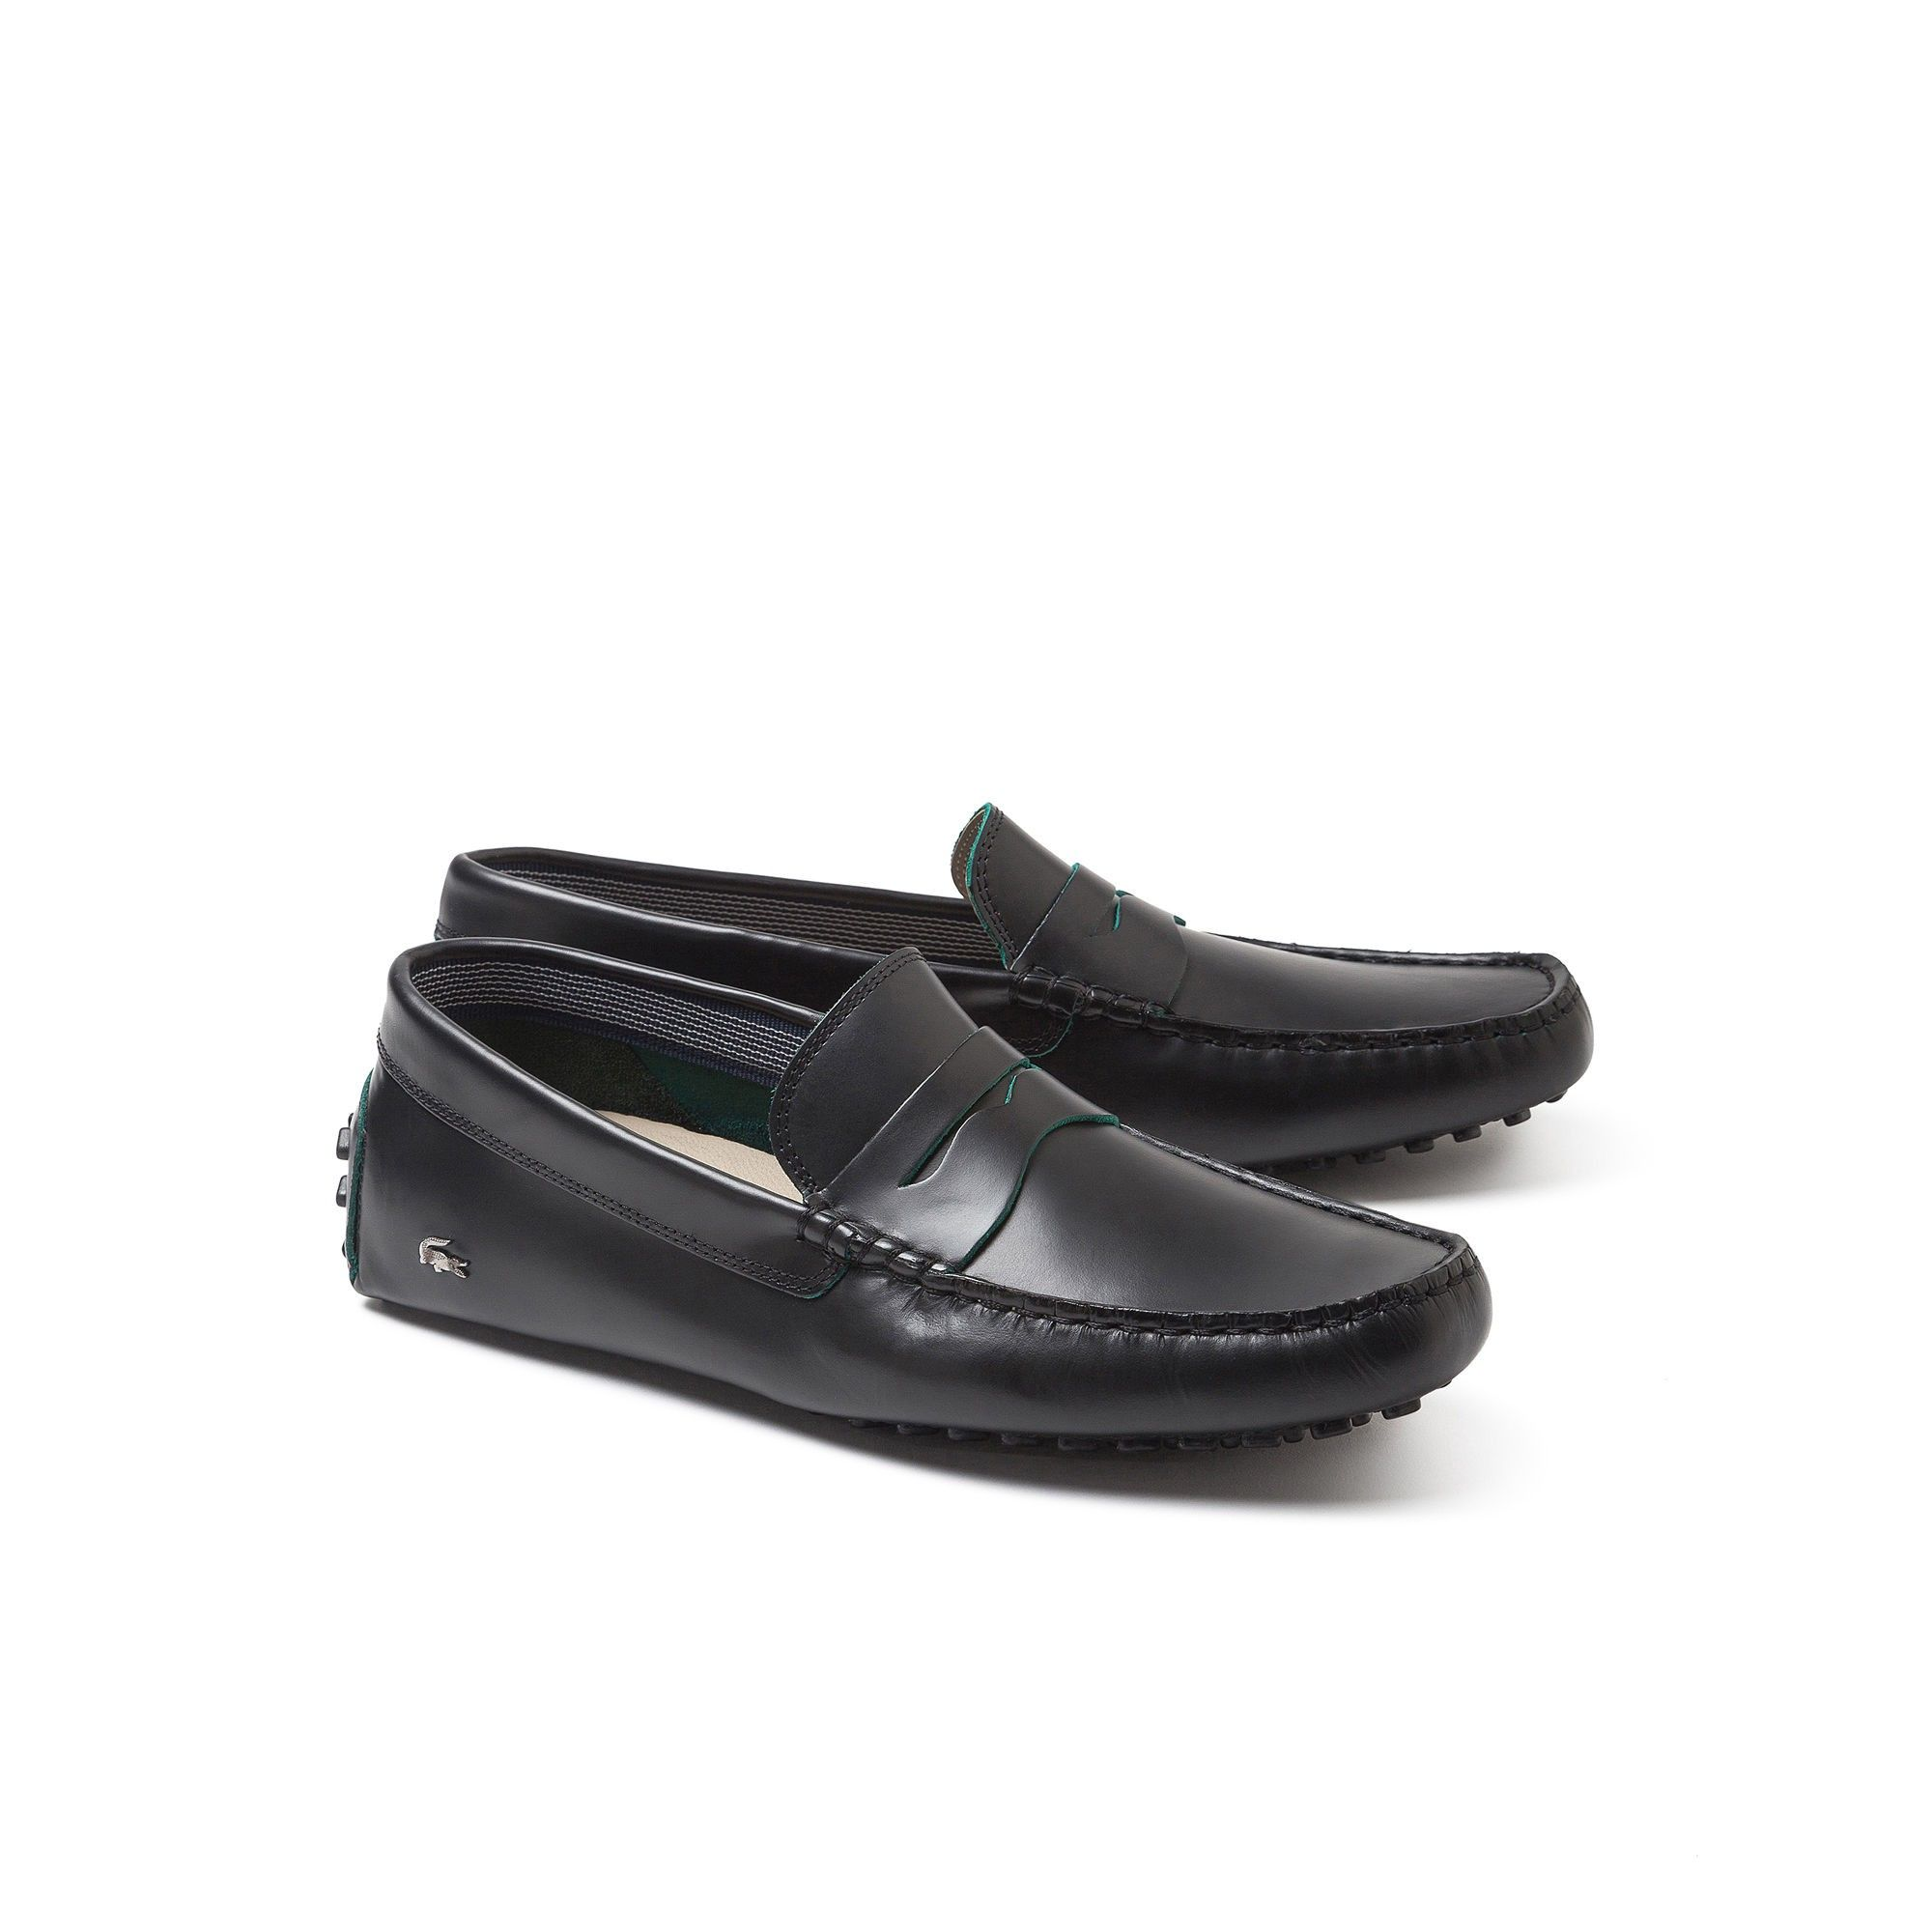 6404a7c52aac LACOSTE Men s Concours Loafer - black.  lacoste  shoes  all ...